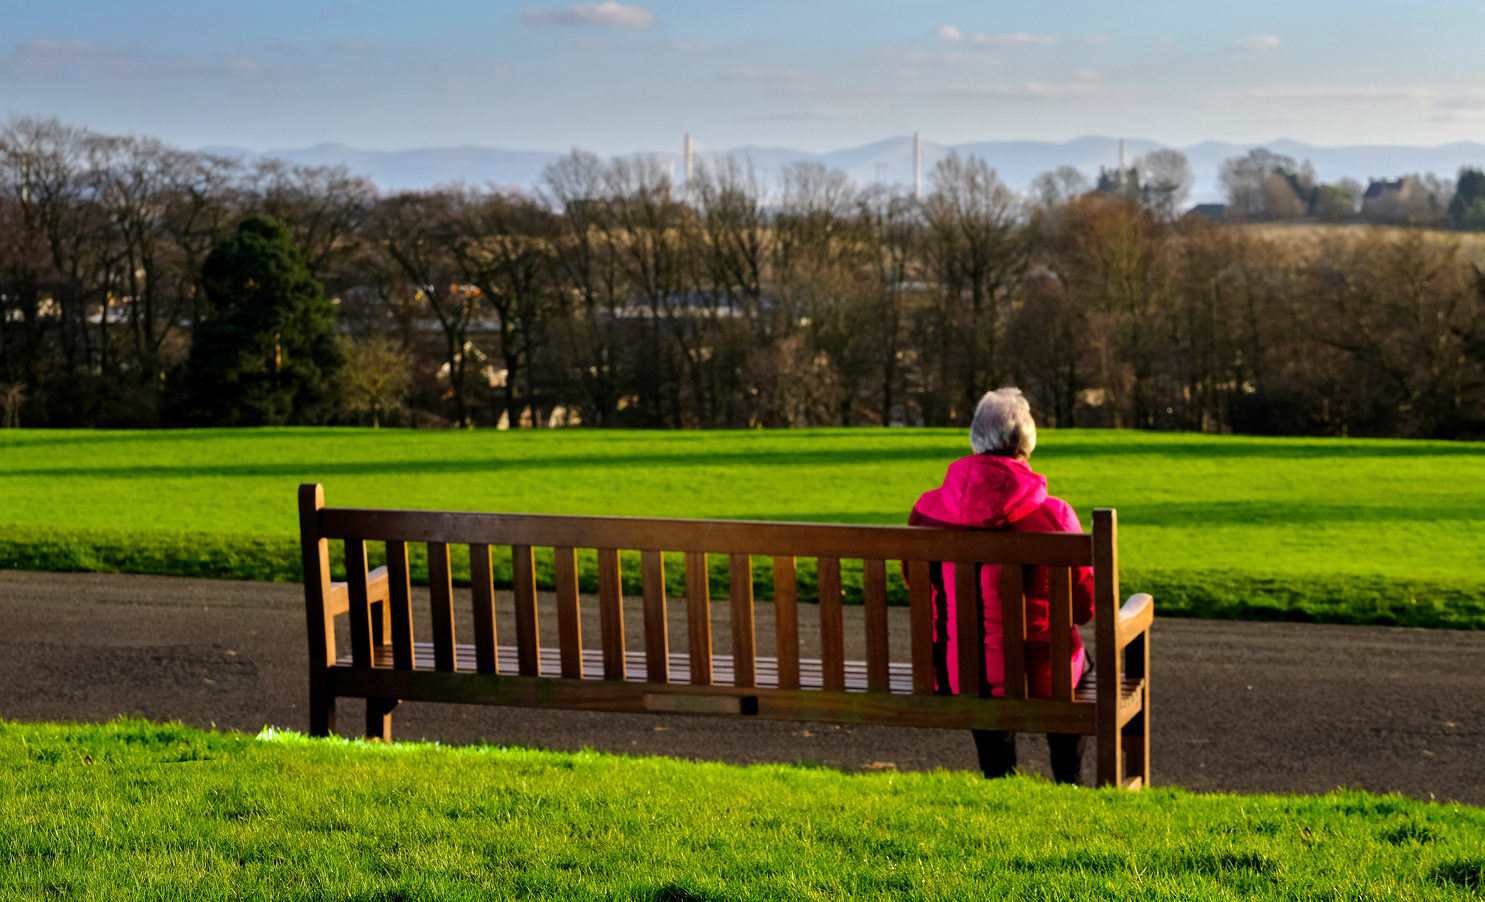 Back of a wooden bench in park with a person in red coat and grey hair sitting on the far right of 4m bench. In distance the park changes to trees, houses and Queensferry Crossing bridge and hills beyond.